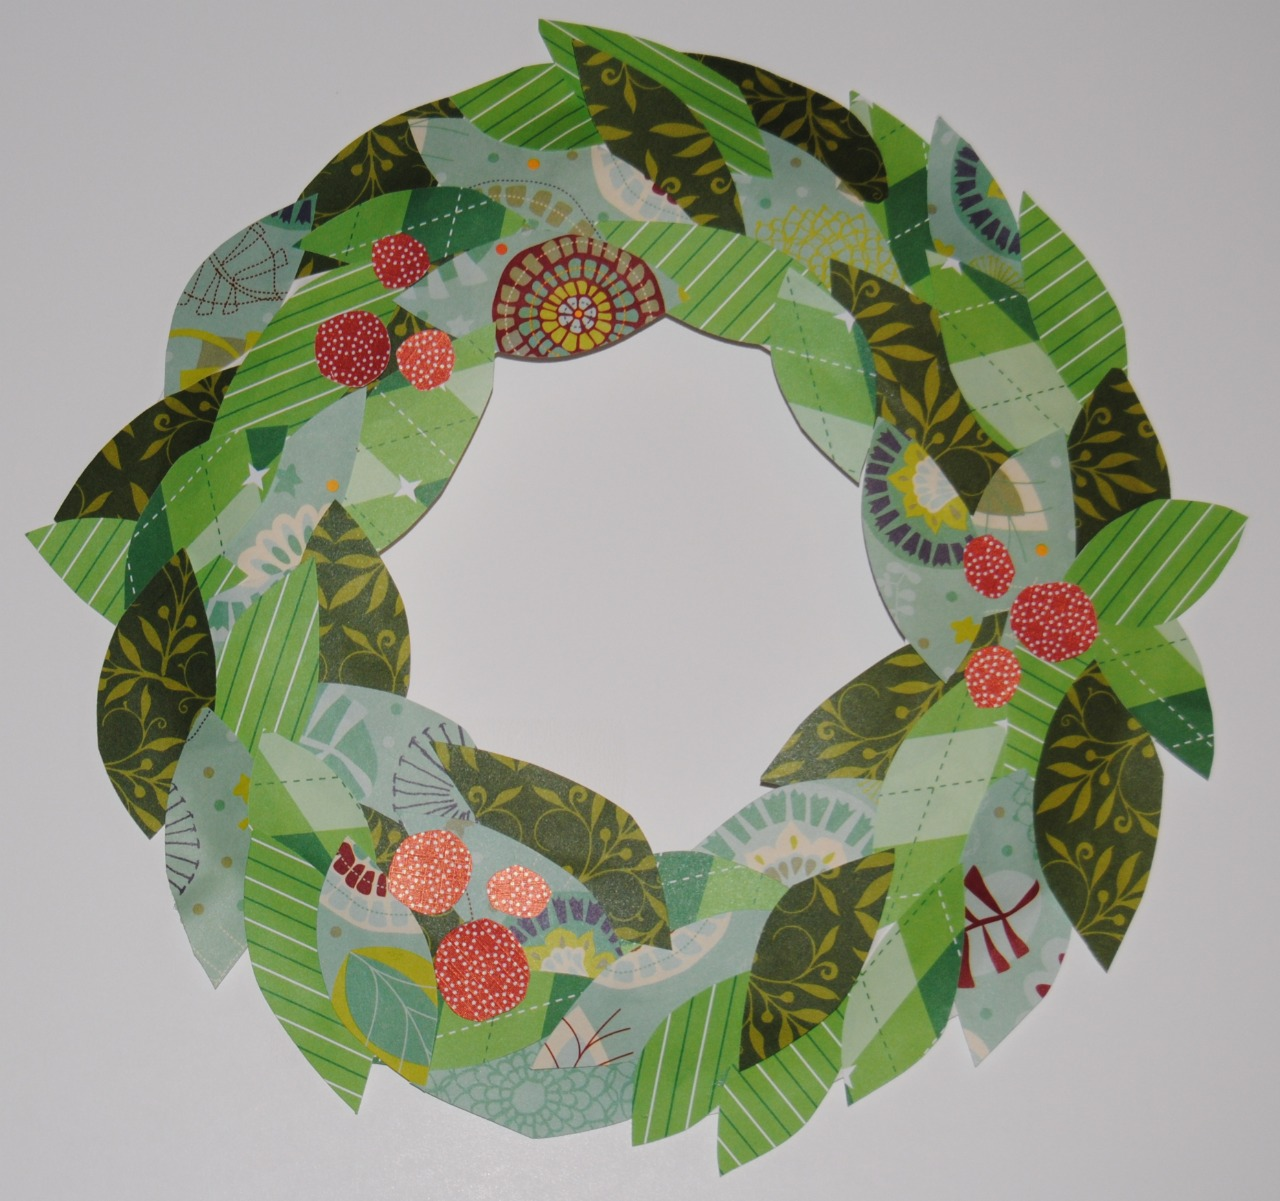 paper wreath craft for kids & boogaloo: paper wreath craft for kids